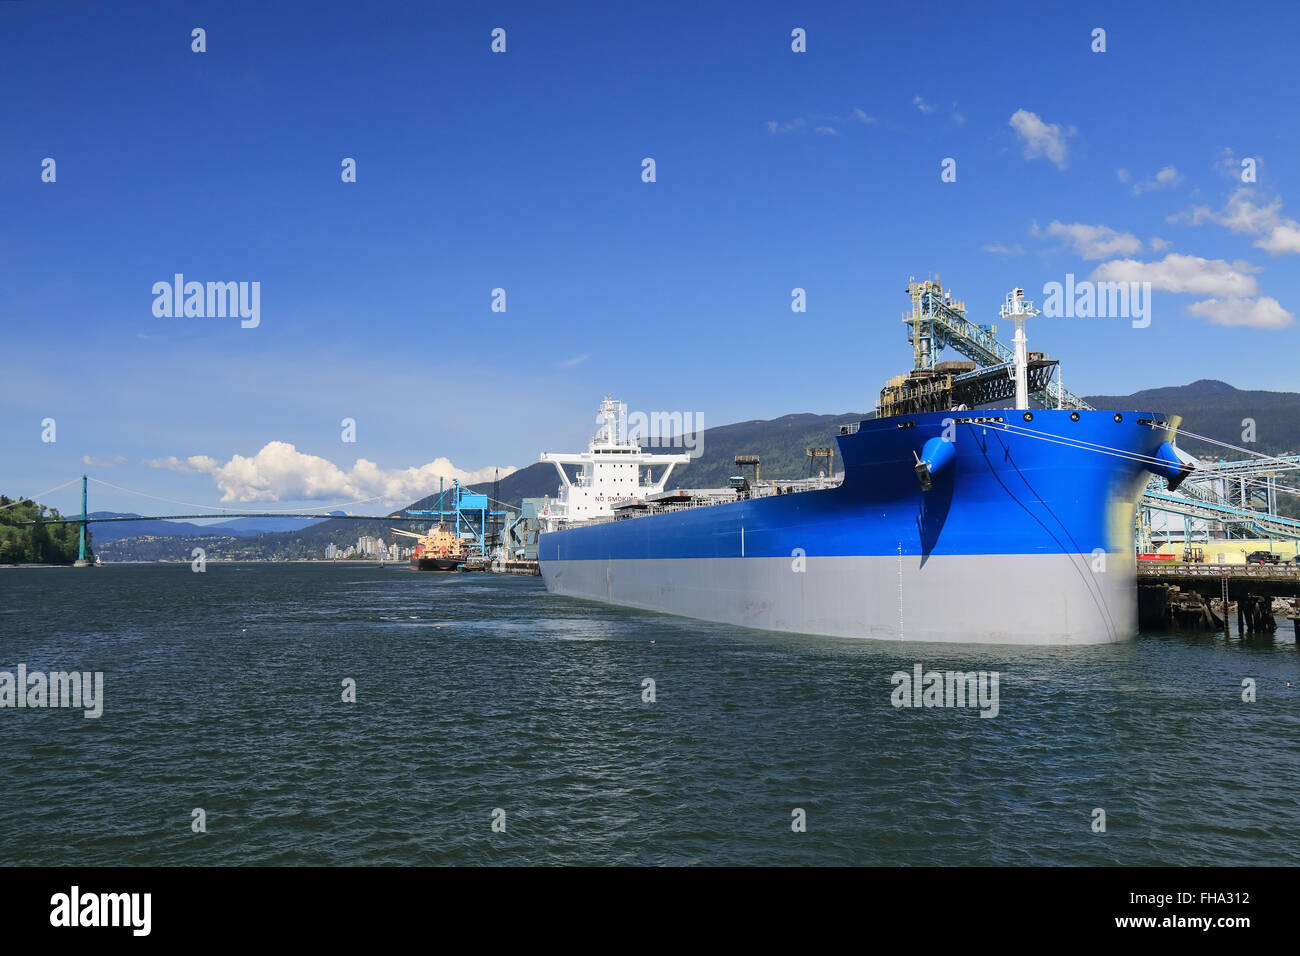 Large bulk carrier in the seaport of Vancouver - Stock Image